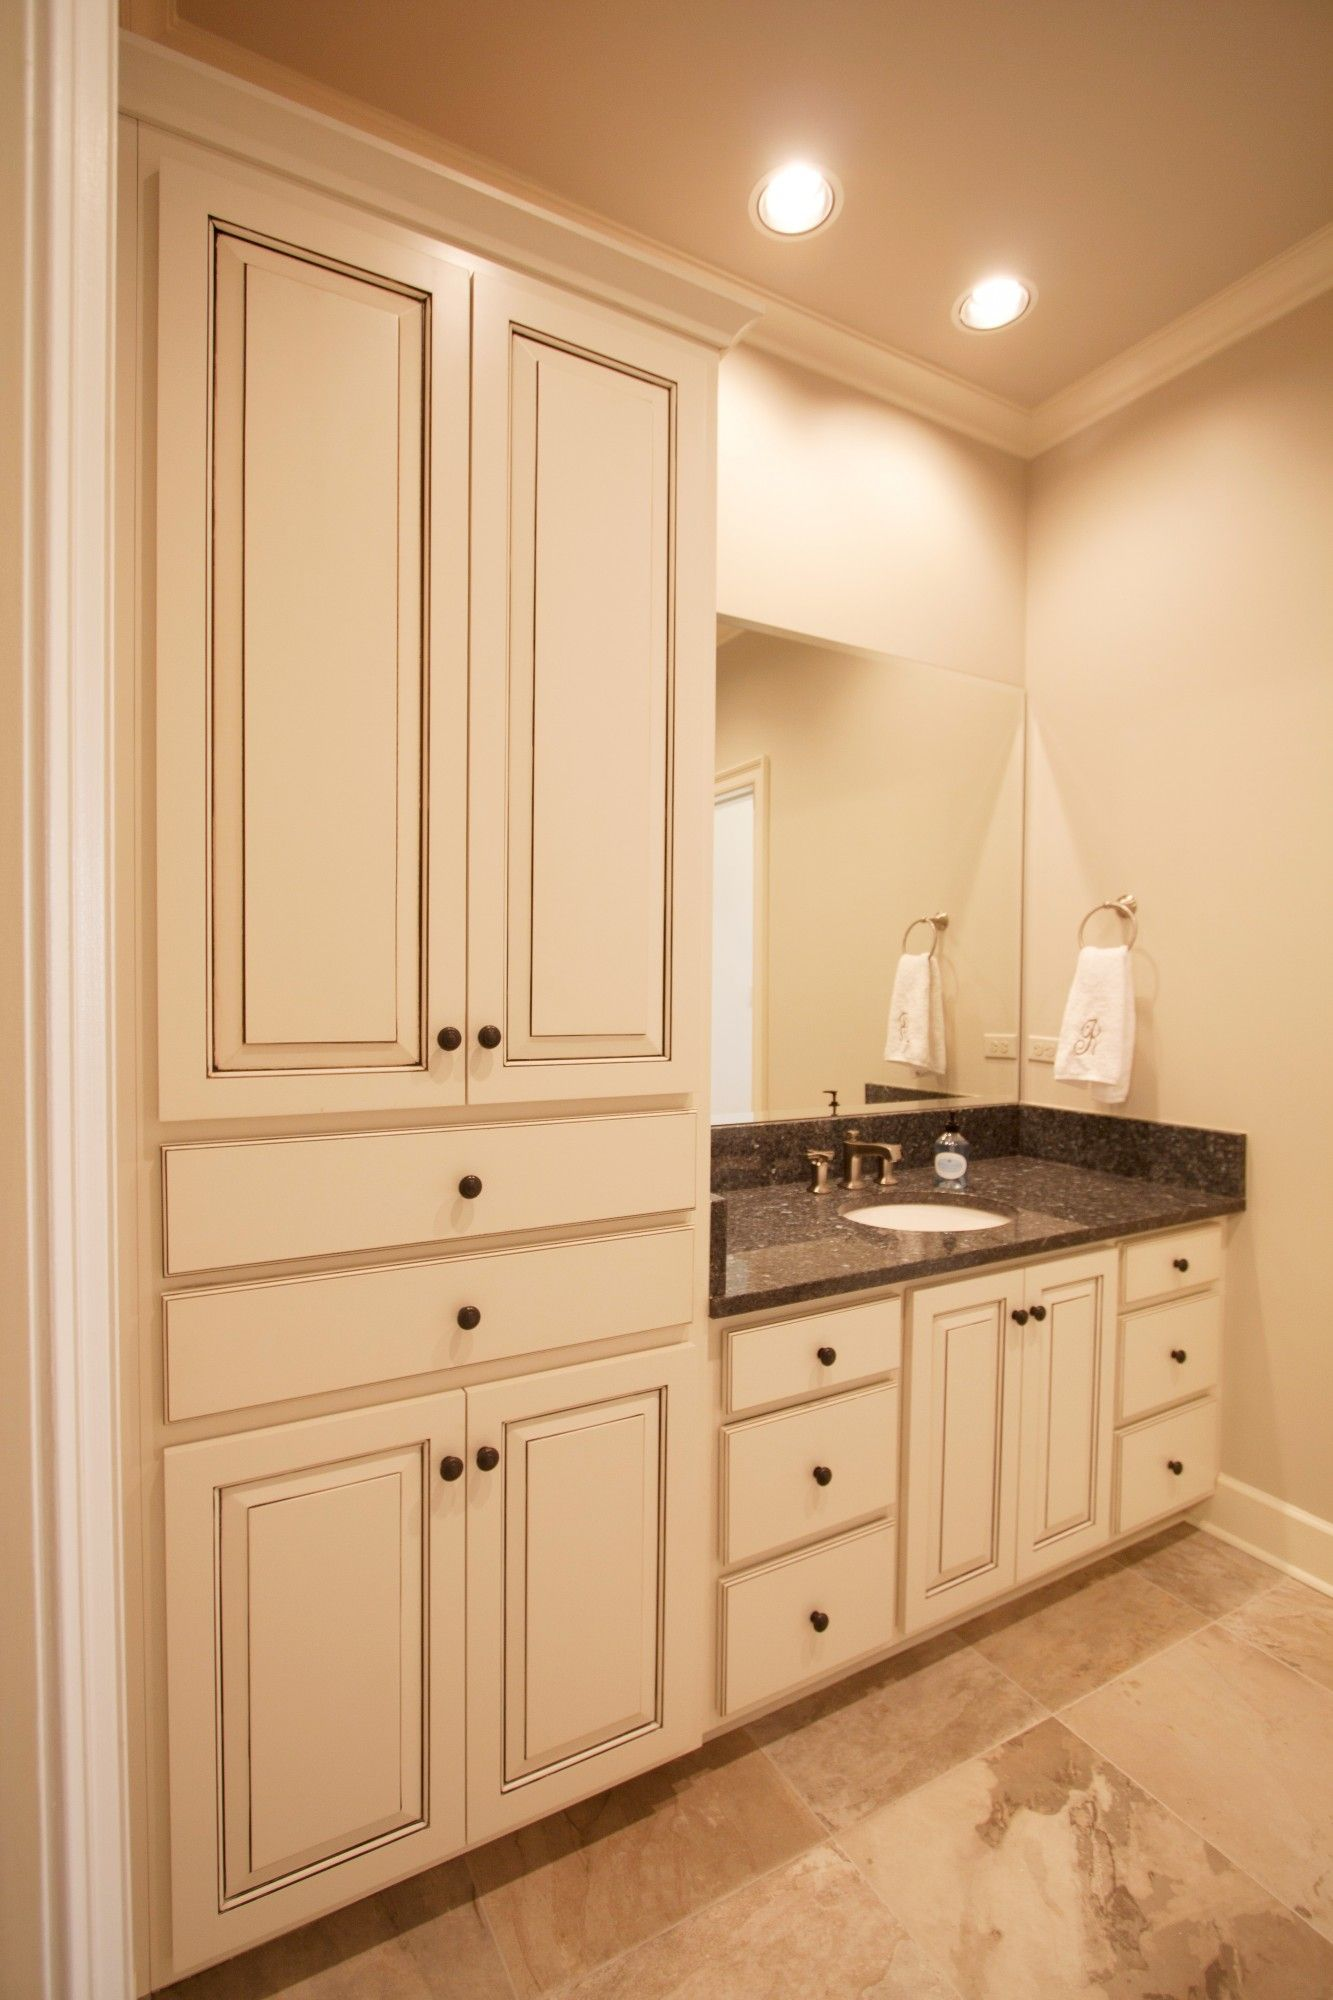 Glazed Bathroom Vanity Cabinets | Northshore Millwork, LLC | Bathrooms